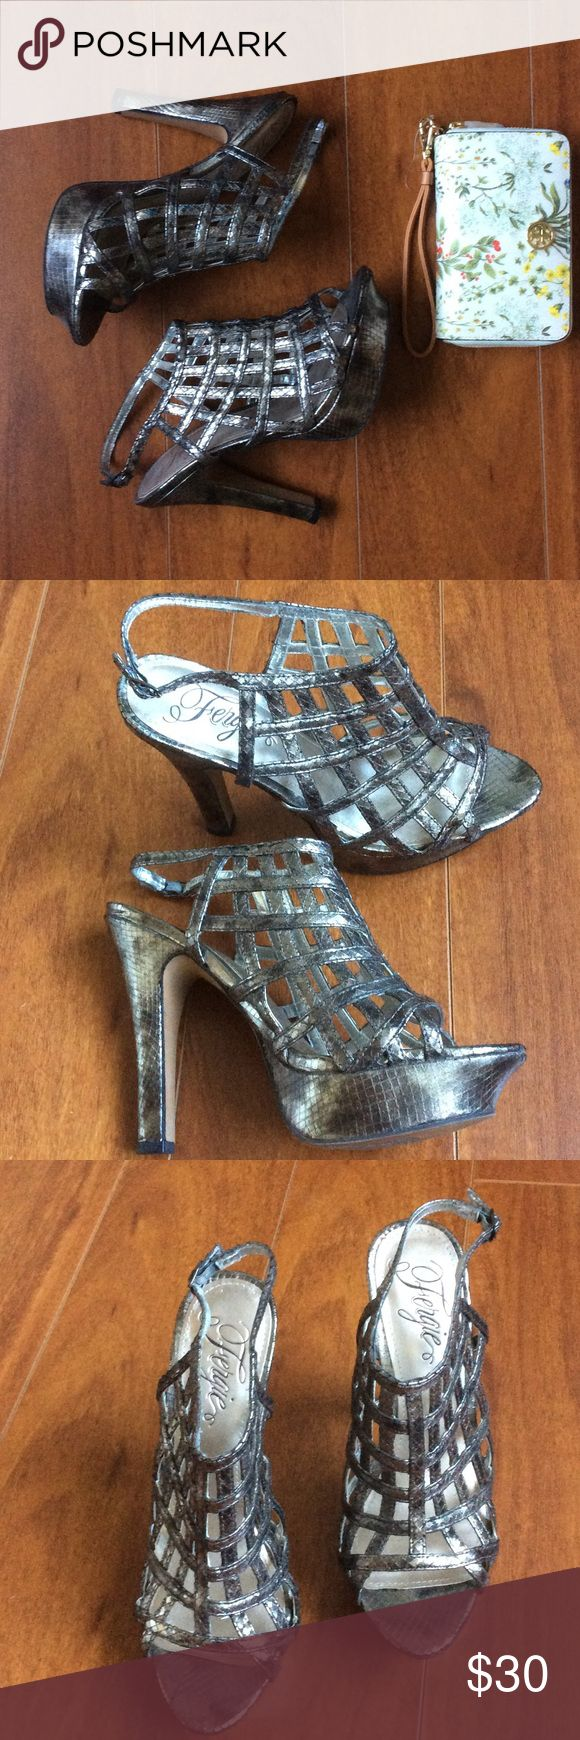 """Fergie Caged Sandal Like new Fergie Caged Sandal is a strappy design featuring a thin stacked heel, and a buckle back.  Wore once.  Heel height 5"""".  Size 8M.  Metallic slate in color. Fergie Shoes Sandals"""